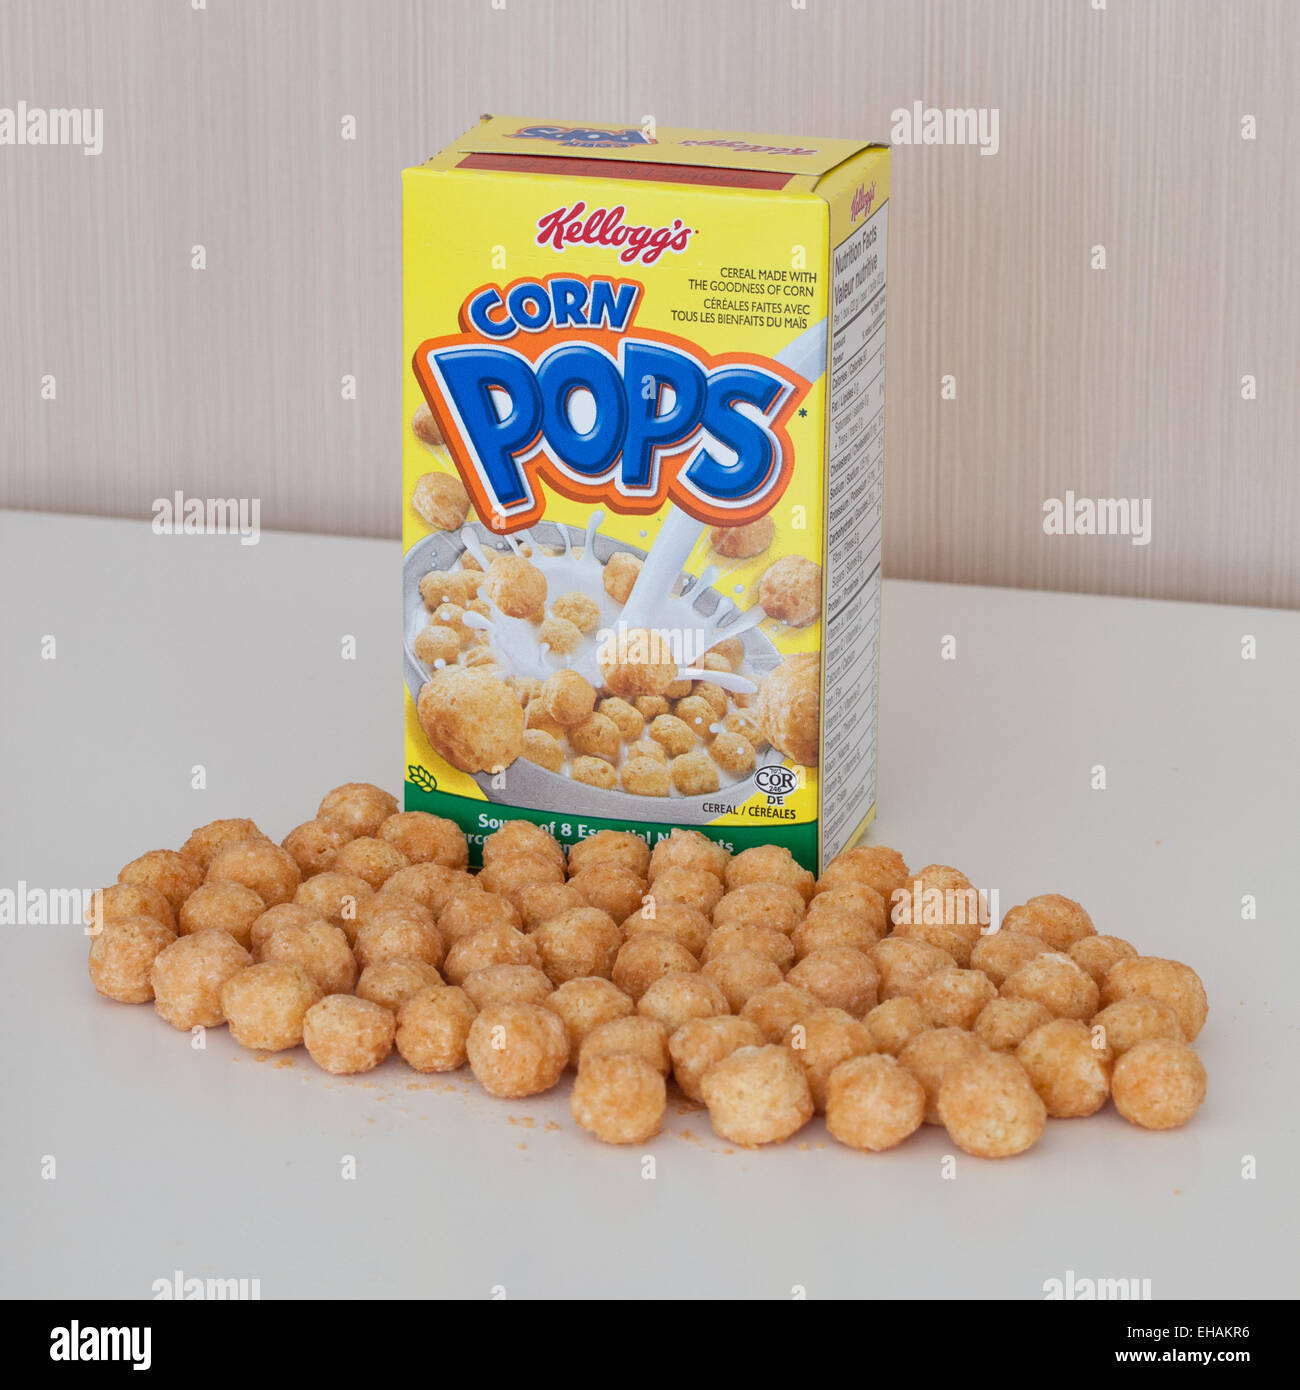 A Fun-sized Box Of Kellogg's Corn Pops Cereal. Canadian